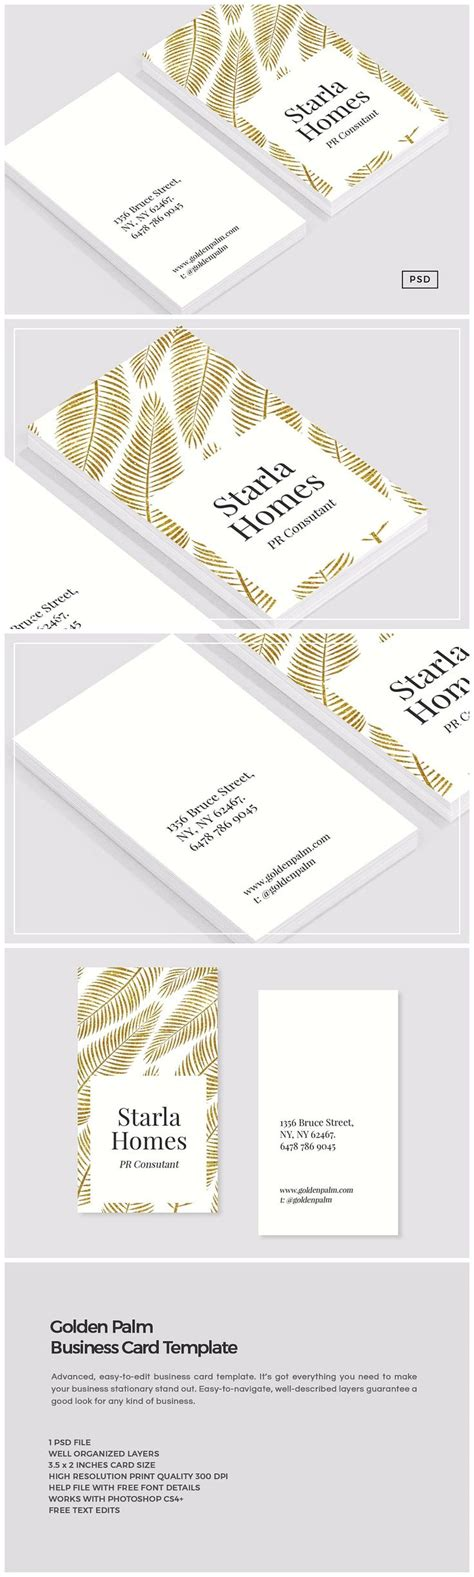 Business Cards Templates You Can Print At Home by How Can I Make Business Cards At Home For Free Free